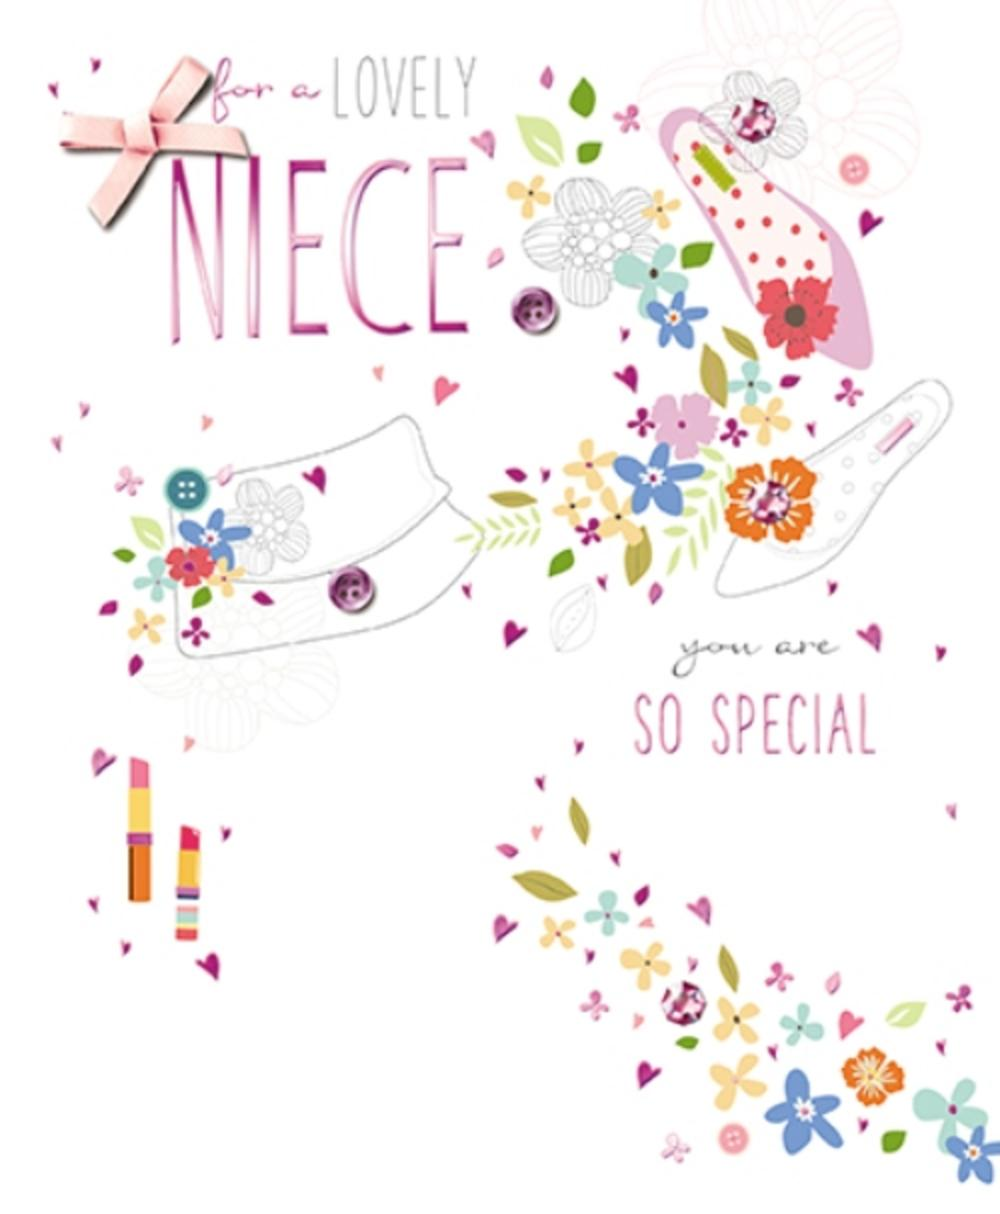 Lovely Niece Embellished Birthday Greeting Card